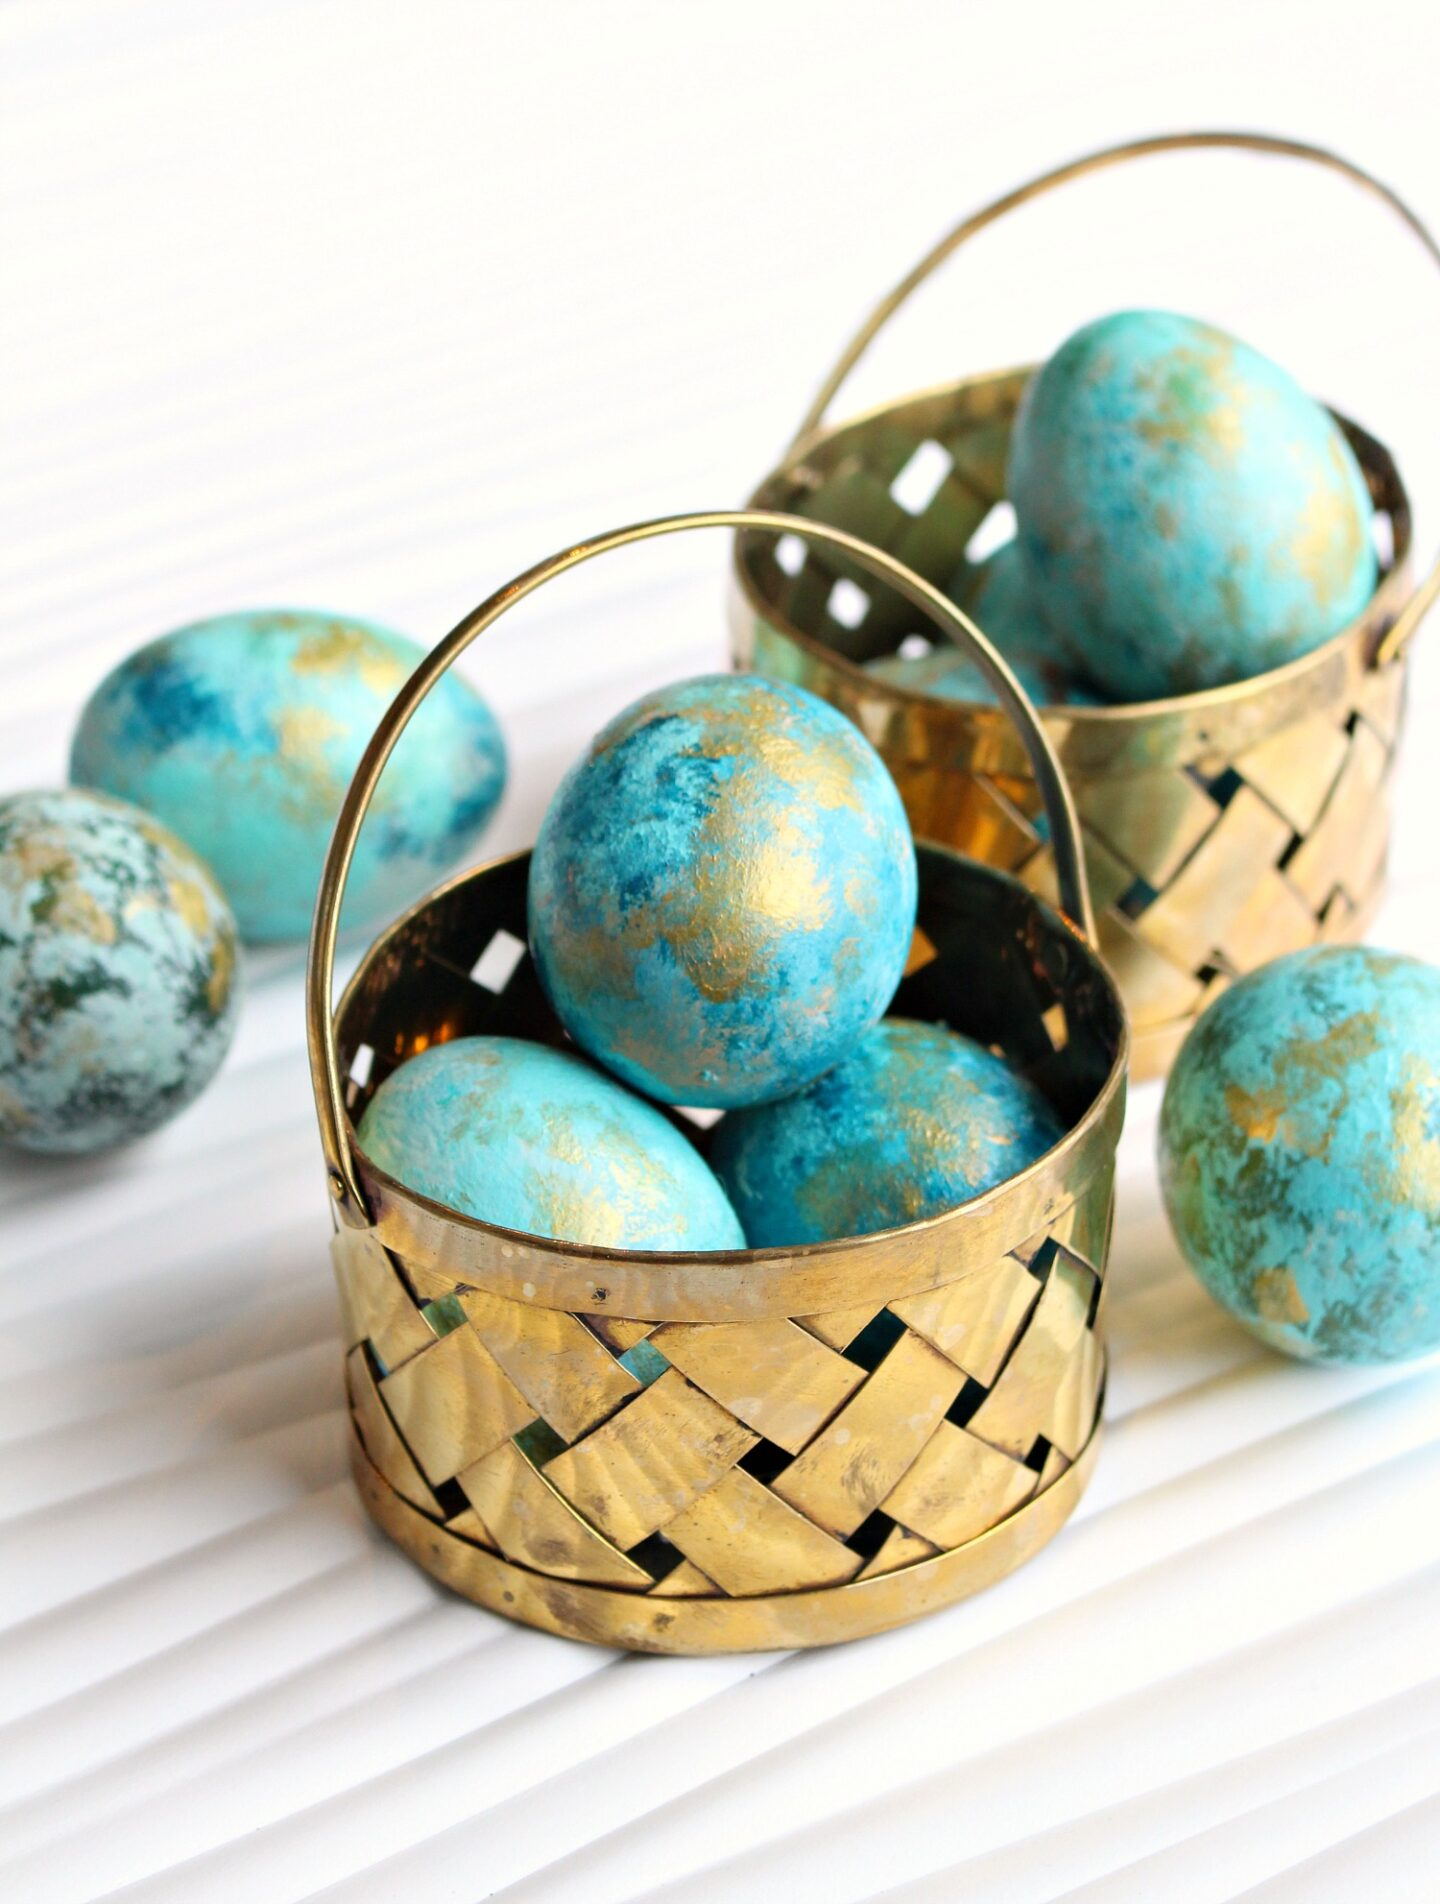 Easy Egg Decorating Idea for Kids